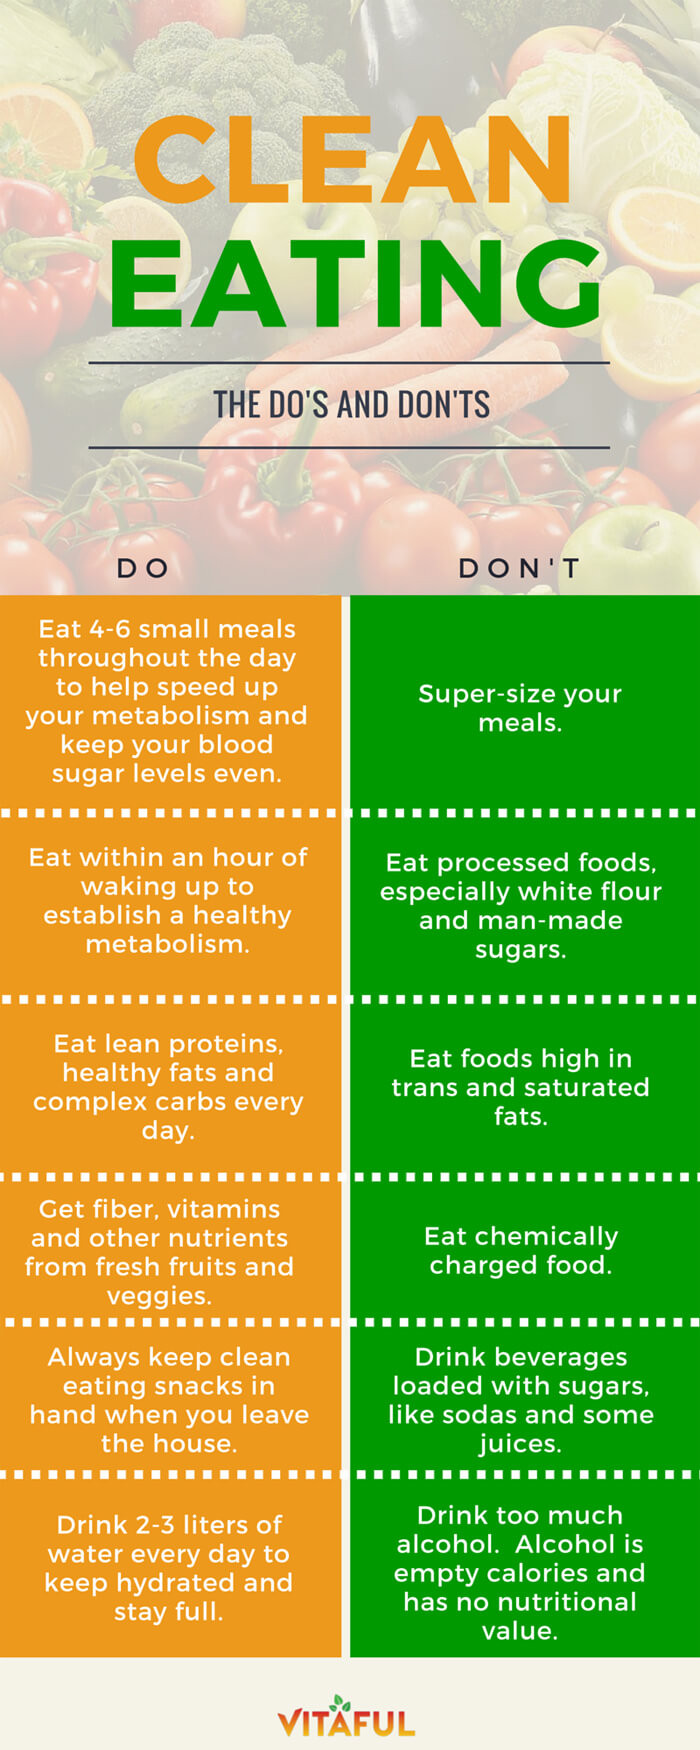 Healthy Clean Eating the top 20 Ideas About Clean Eating – the Do's and Don'ts